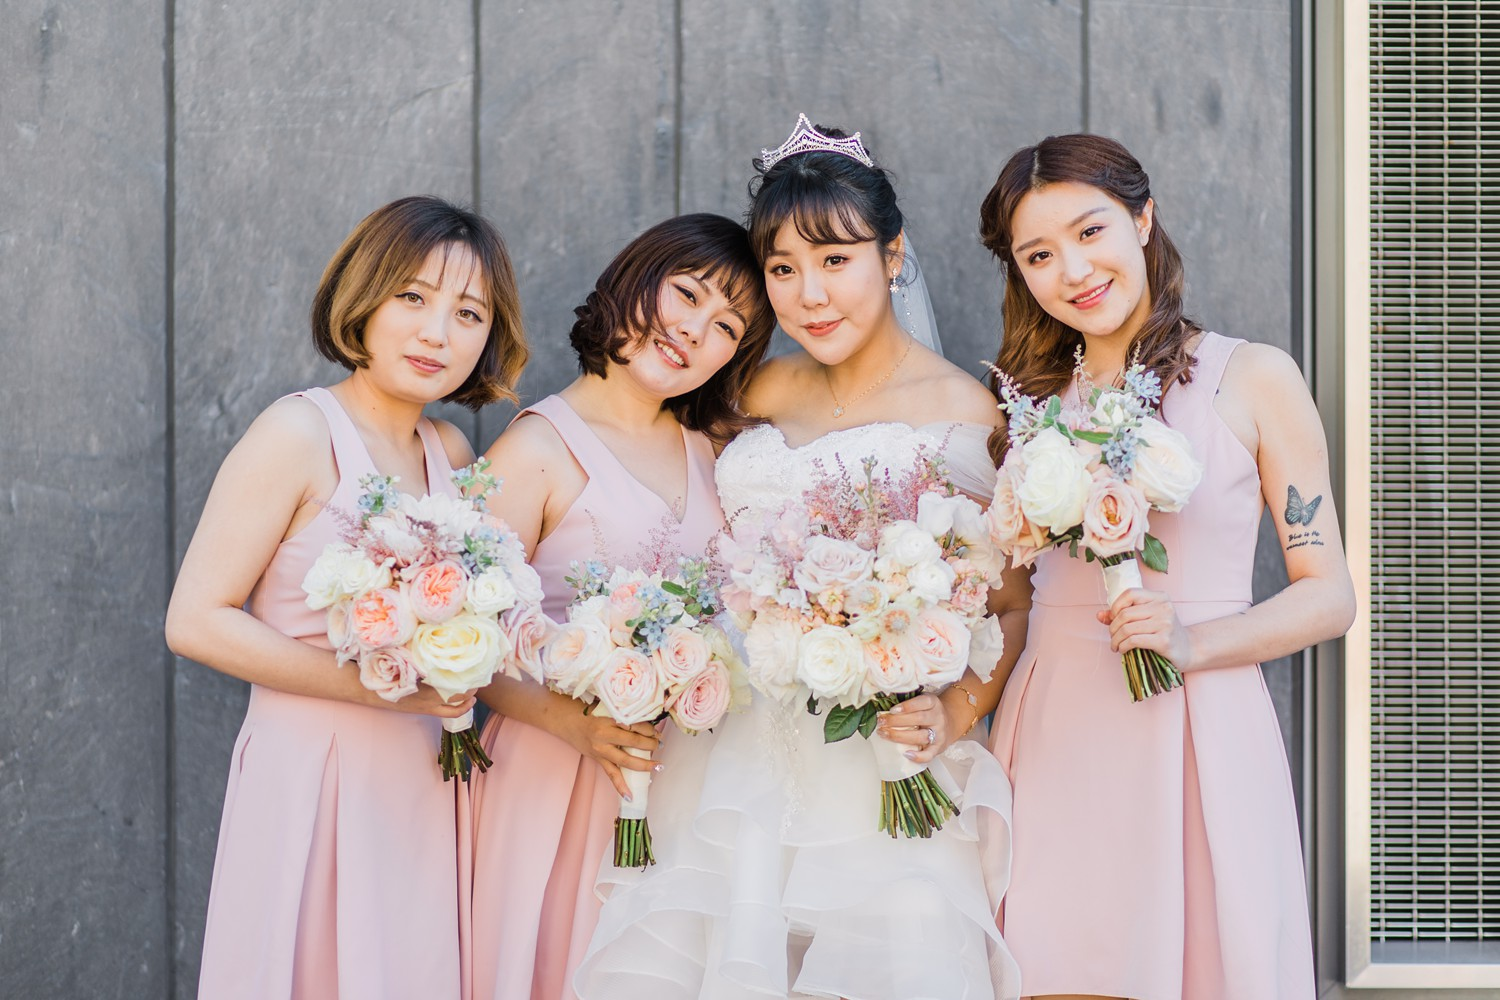 Bridesmaids at Luxury Yorkville Vinci Toronto Four Season Hotel Wedding Photos with Chinese Bride and Groom